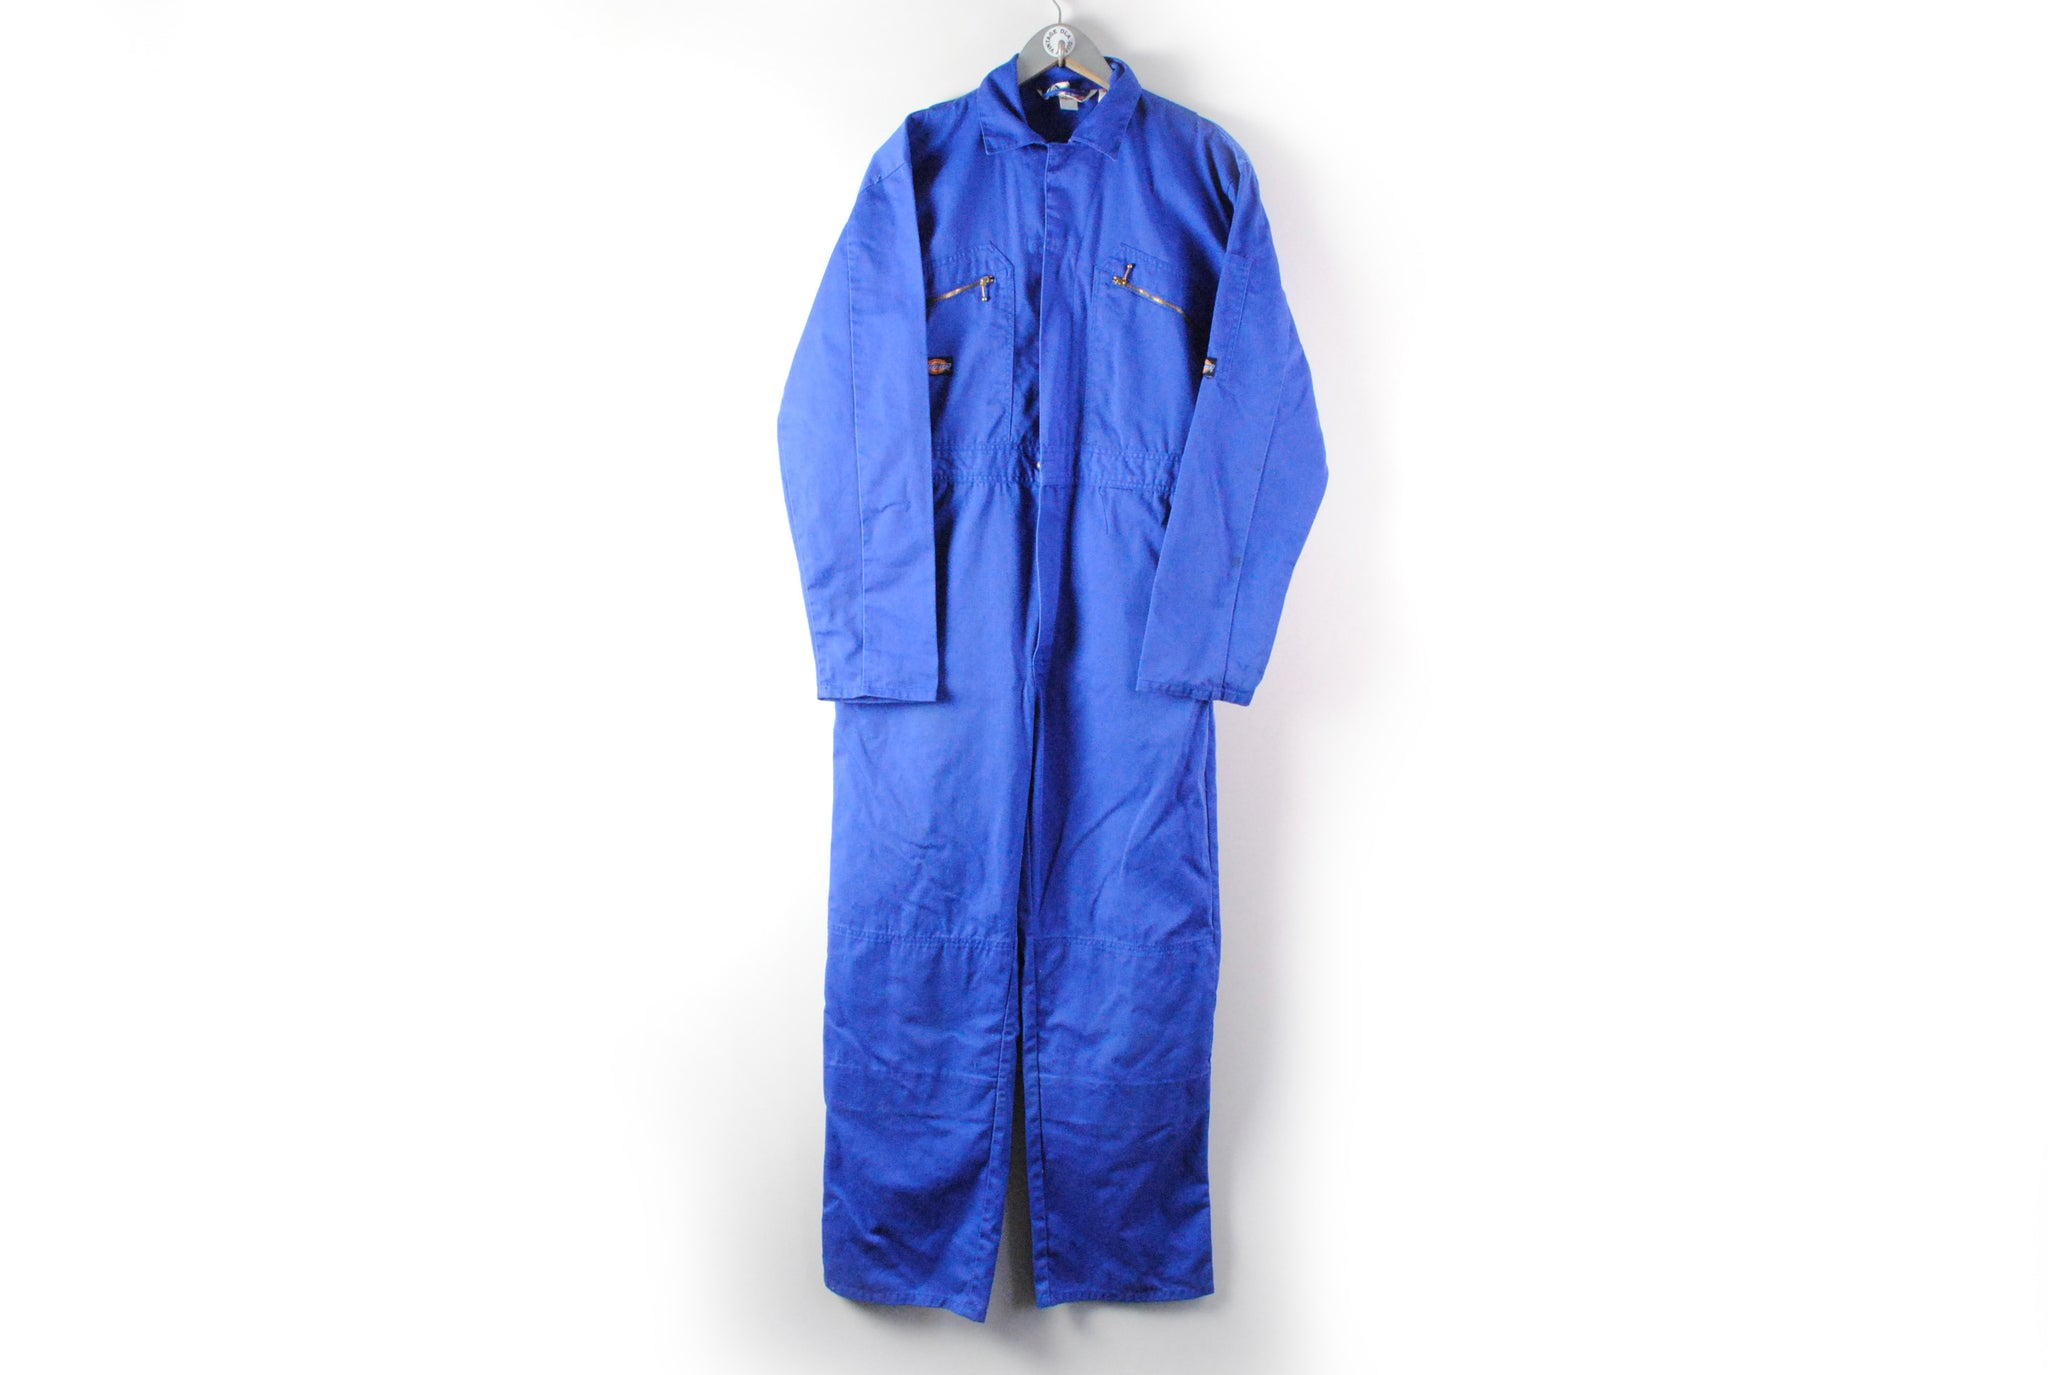 Vintage Dickies Coverall Redhawk Large blue 90s retro overall work wear